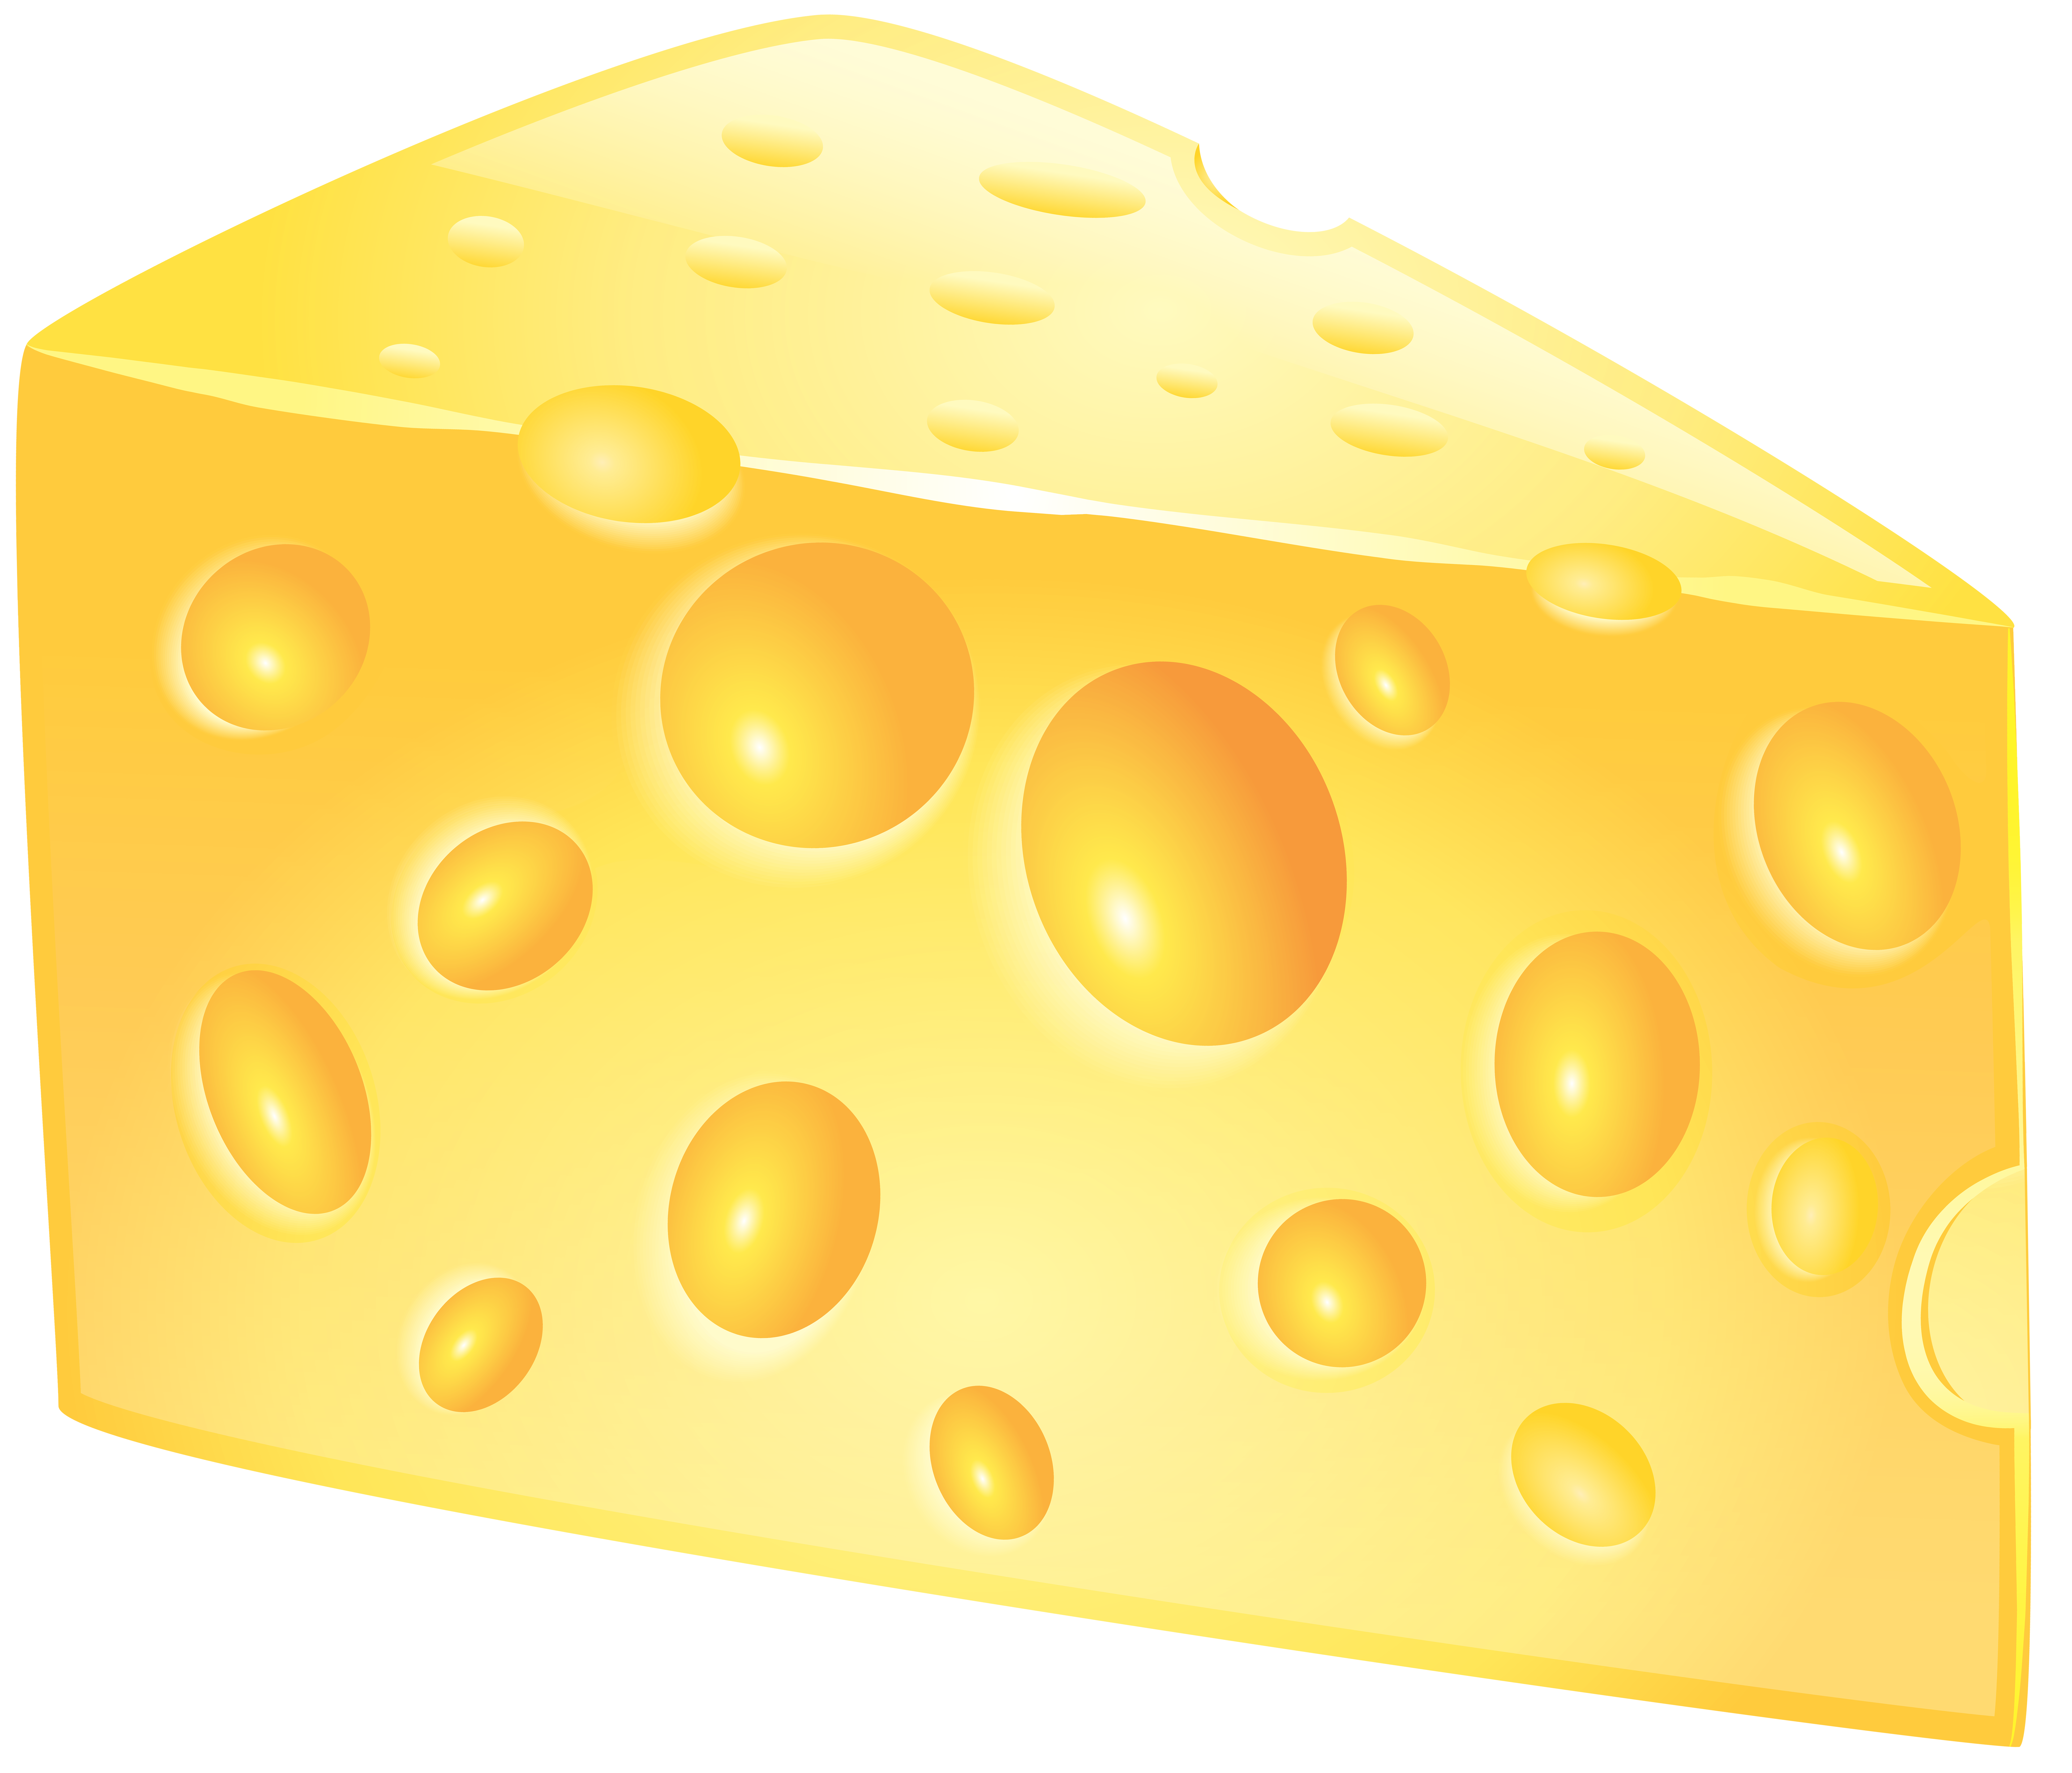 Png clip art image. Grape clipart cheese